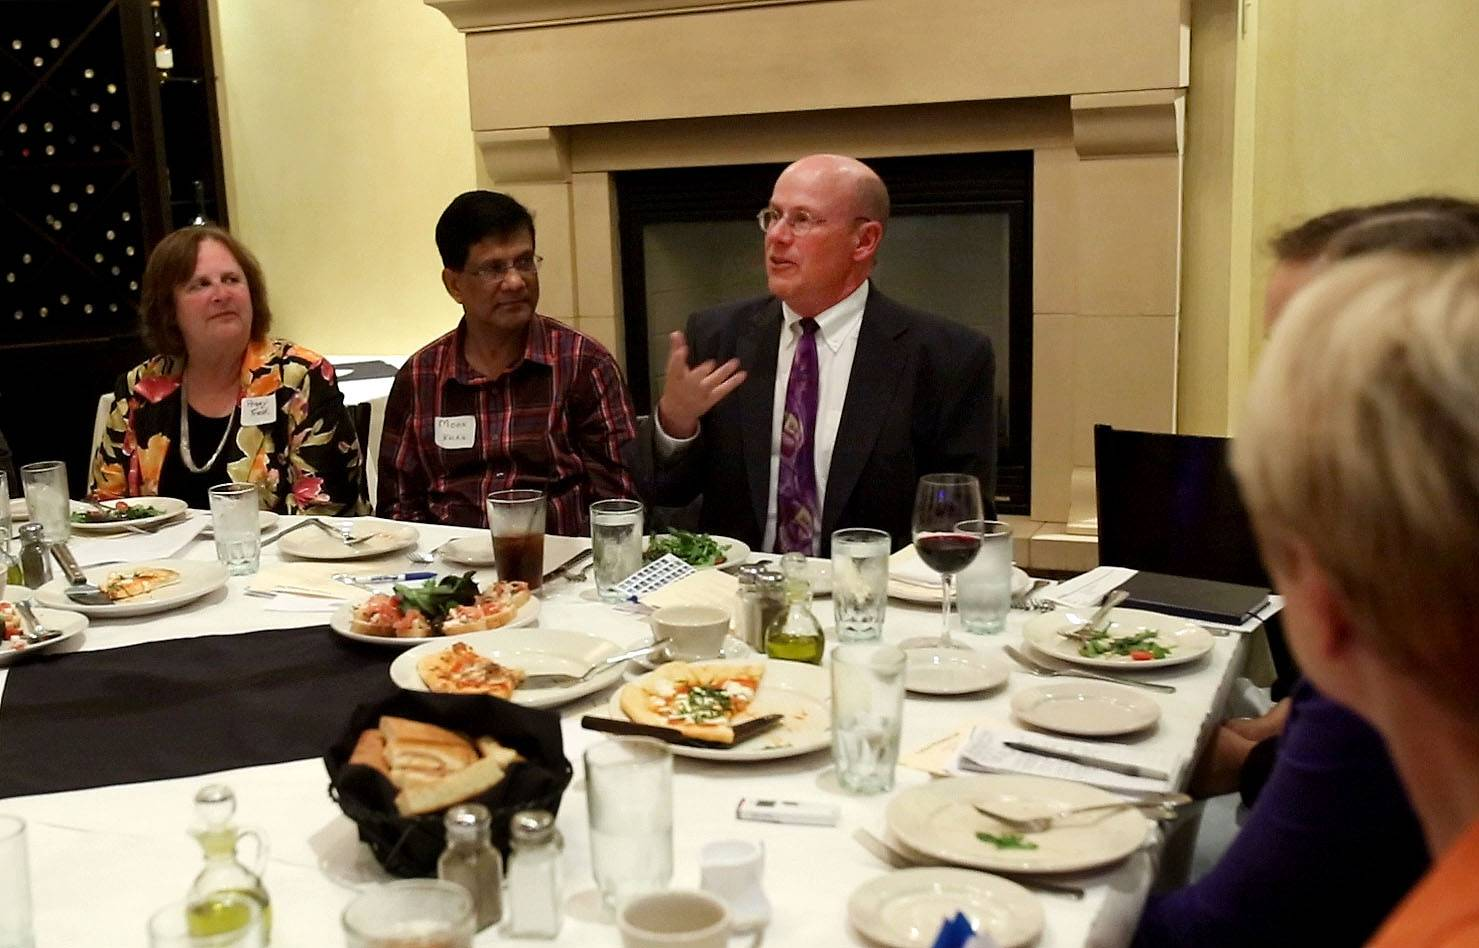 Bob Smith, Daily Herald DuPage County editor, leads an On the Table discussion in Downers Grove in which nine DuPage leaders discussed ways to build collaboration, trust, opportunities ad support for young people.